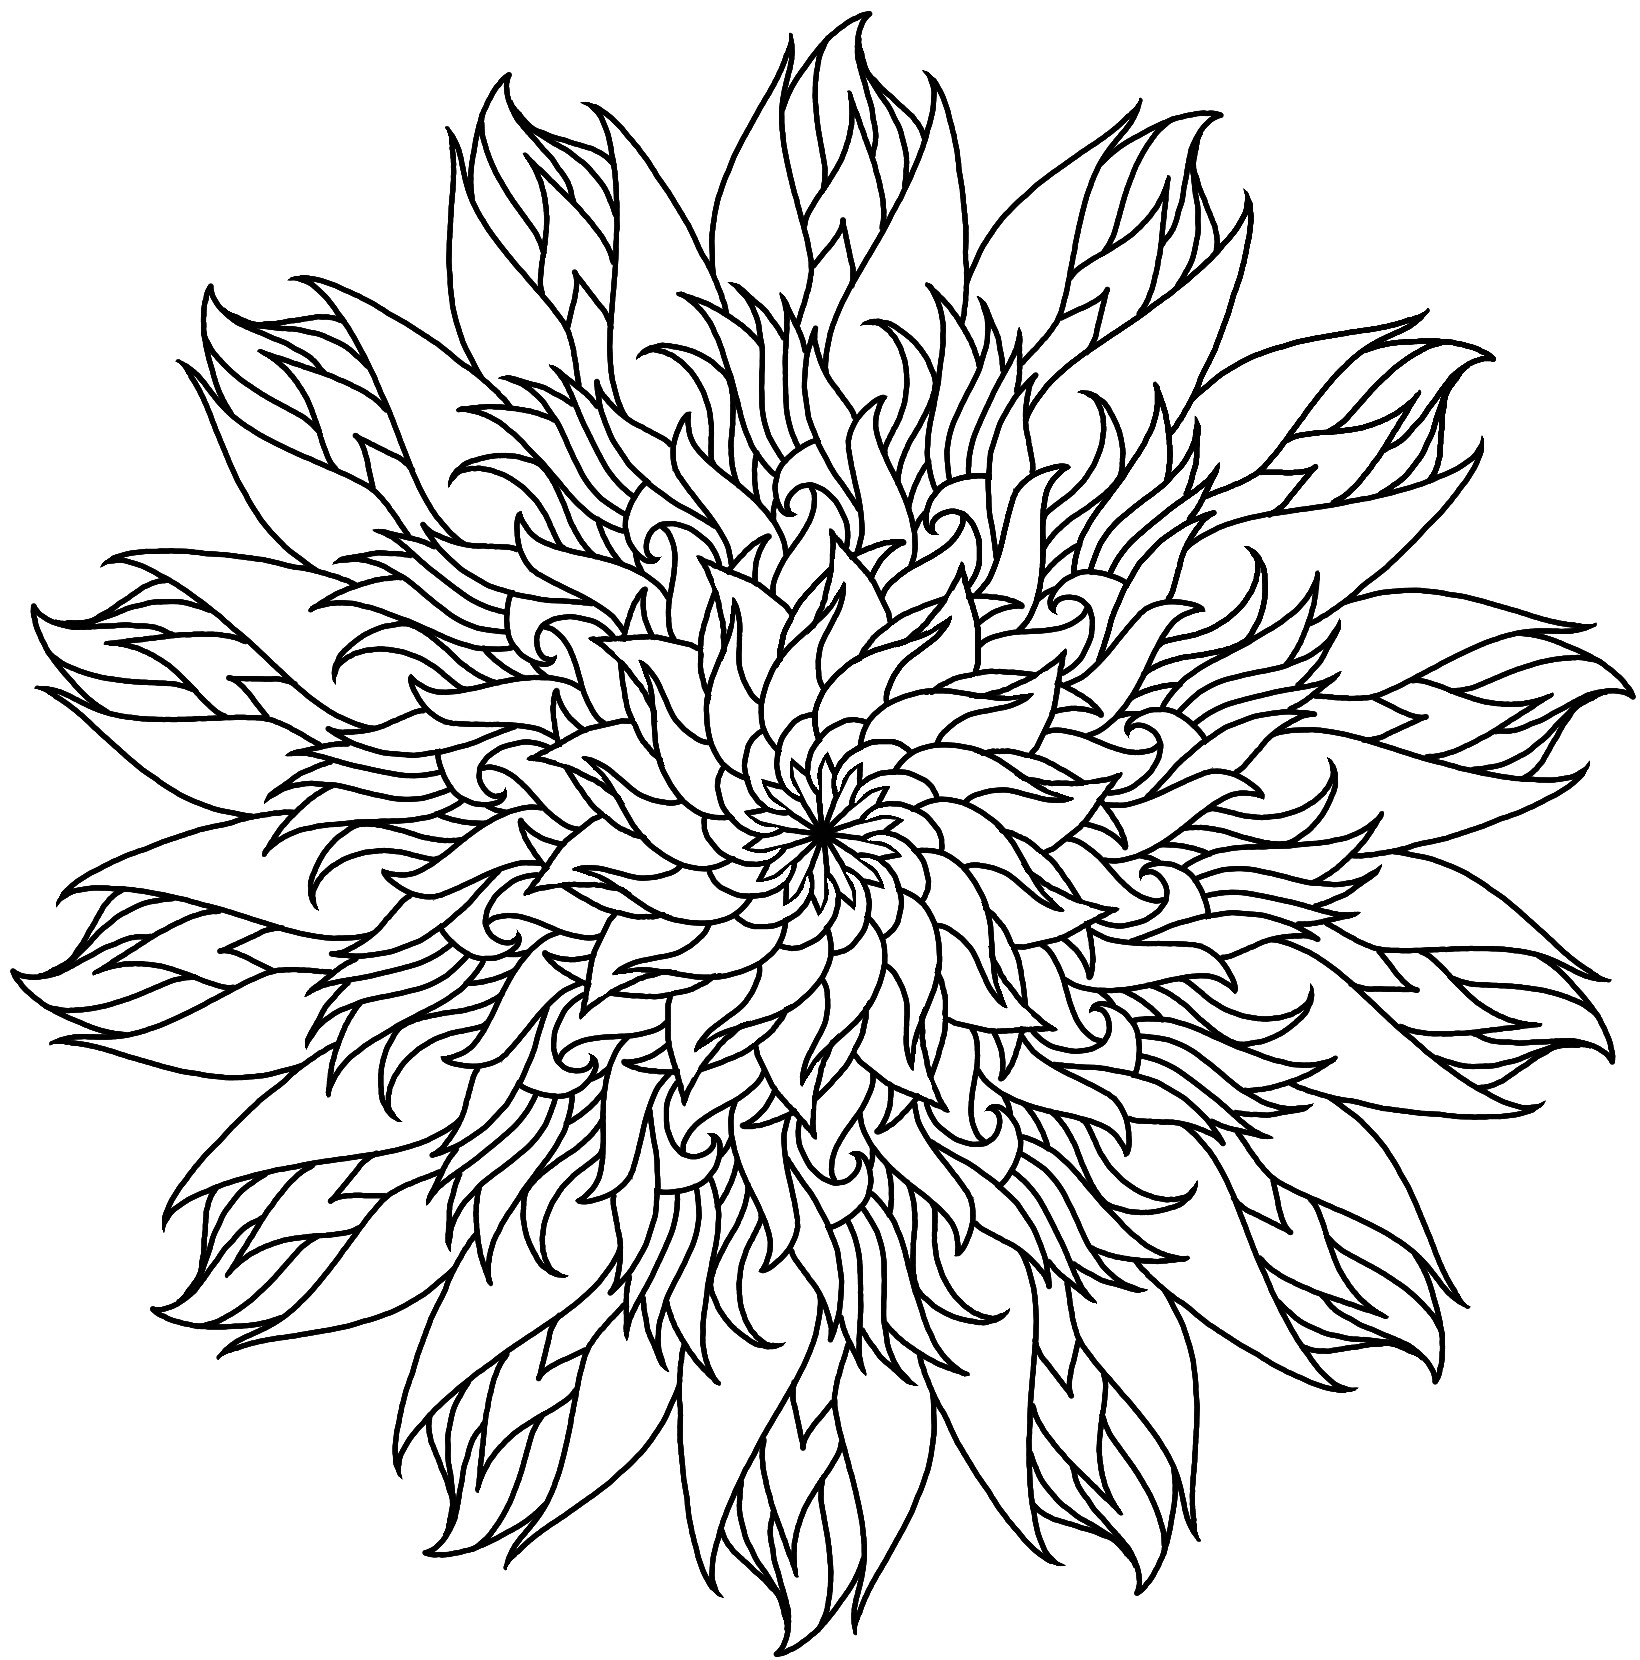 Flame Flower